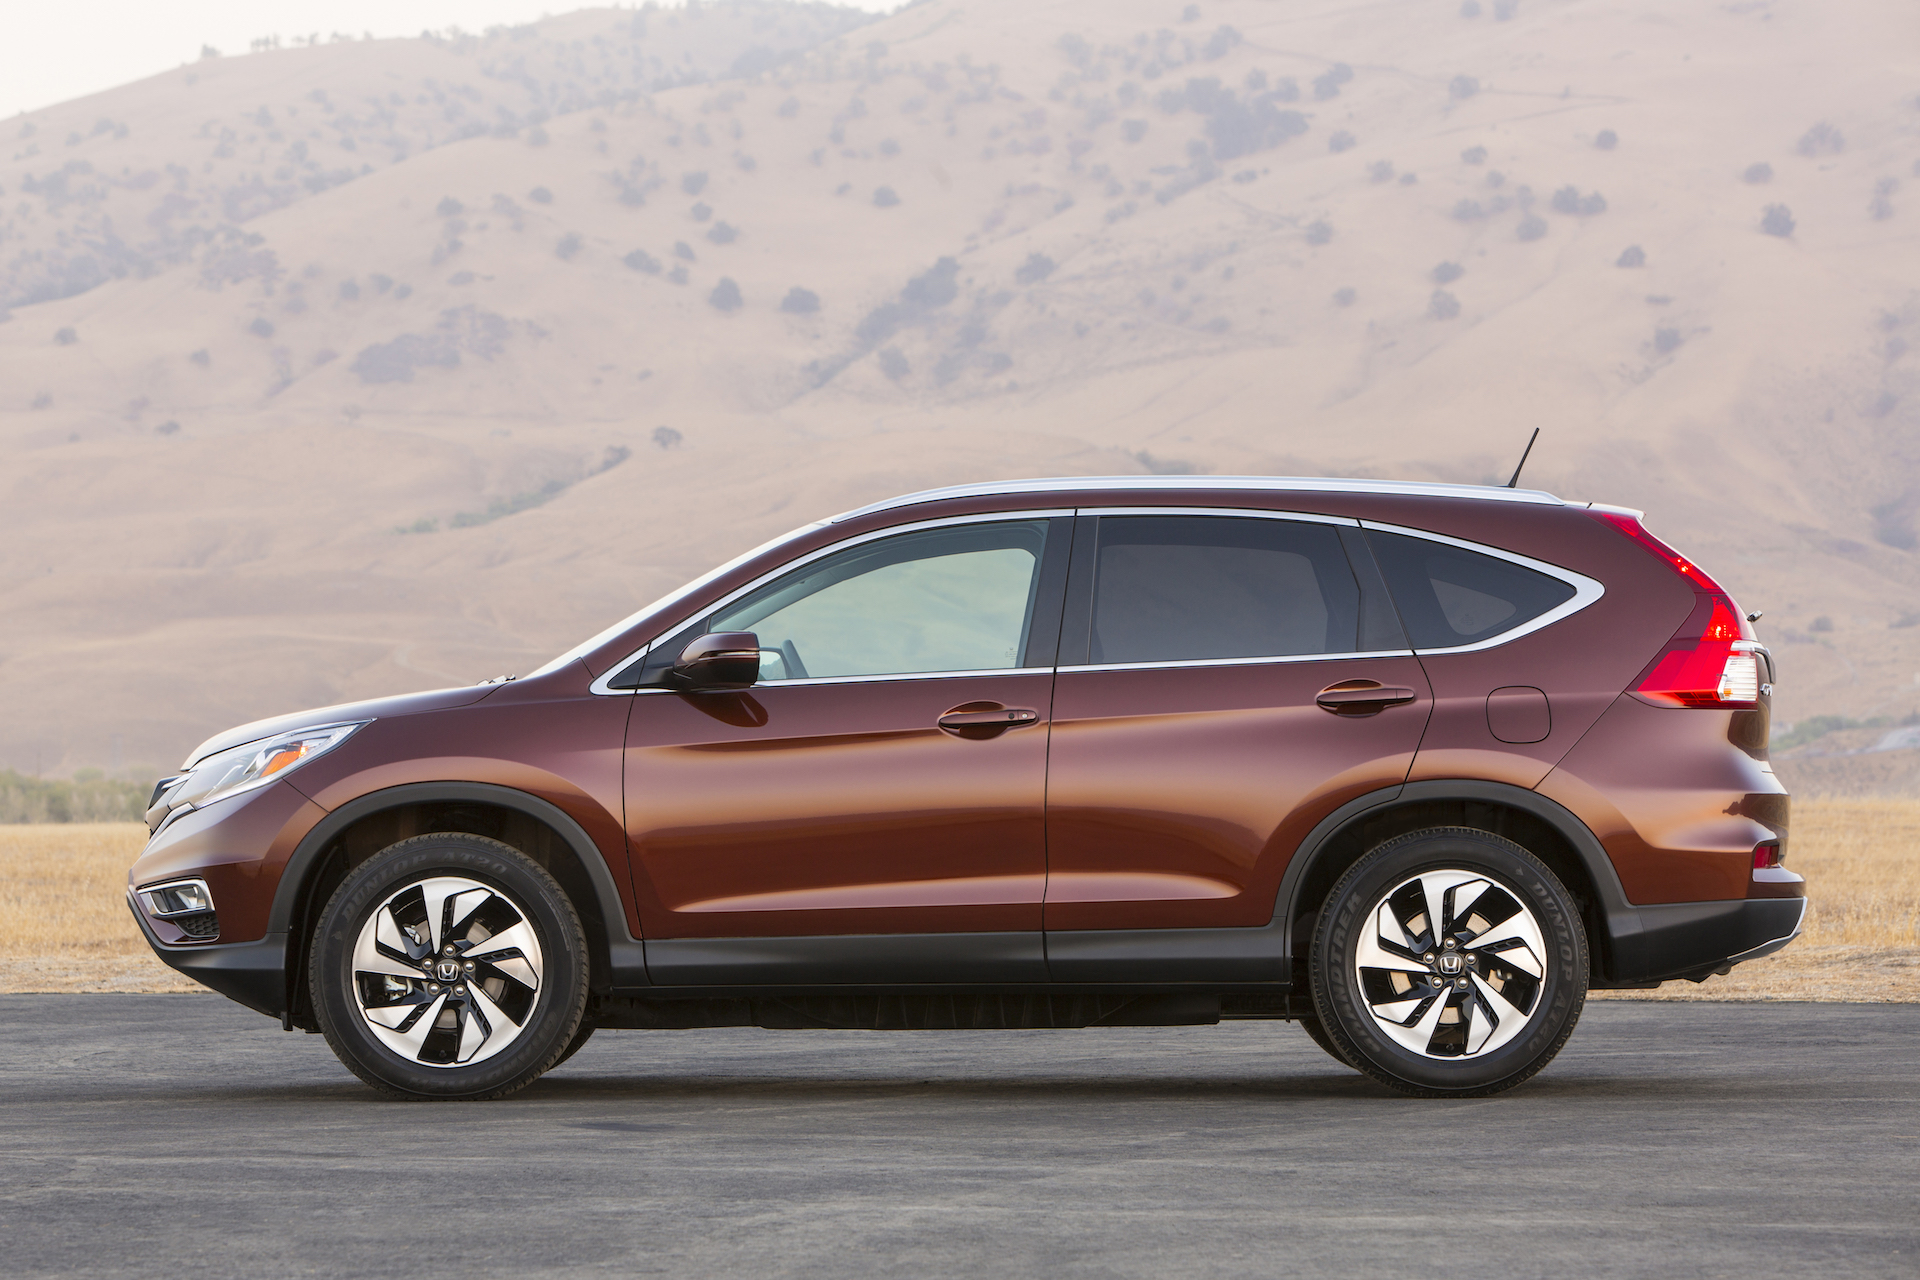 2016 Honda CR-V Review, Ratings, Specs, Prices, and Photos - The Car ...